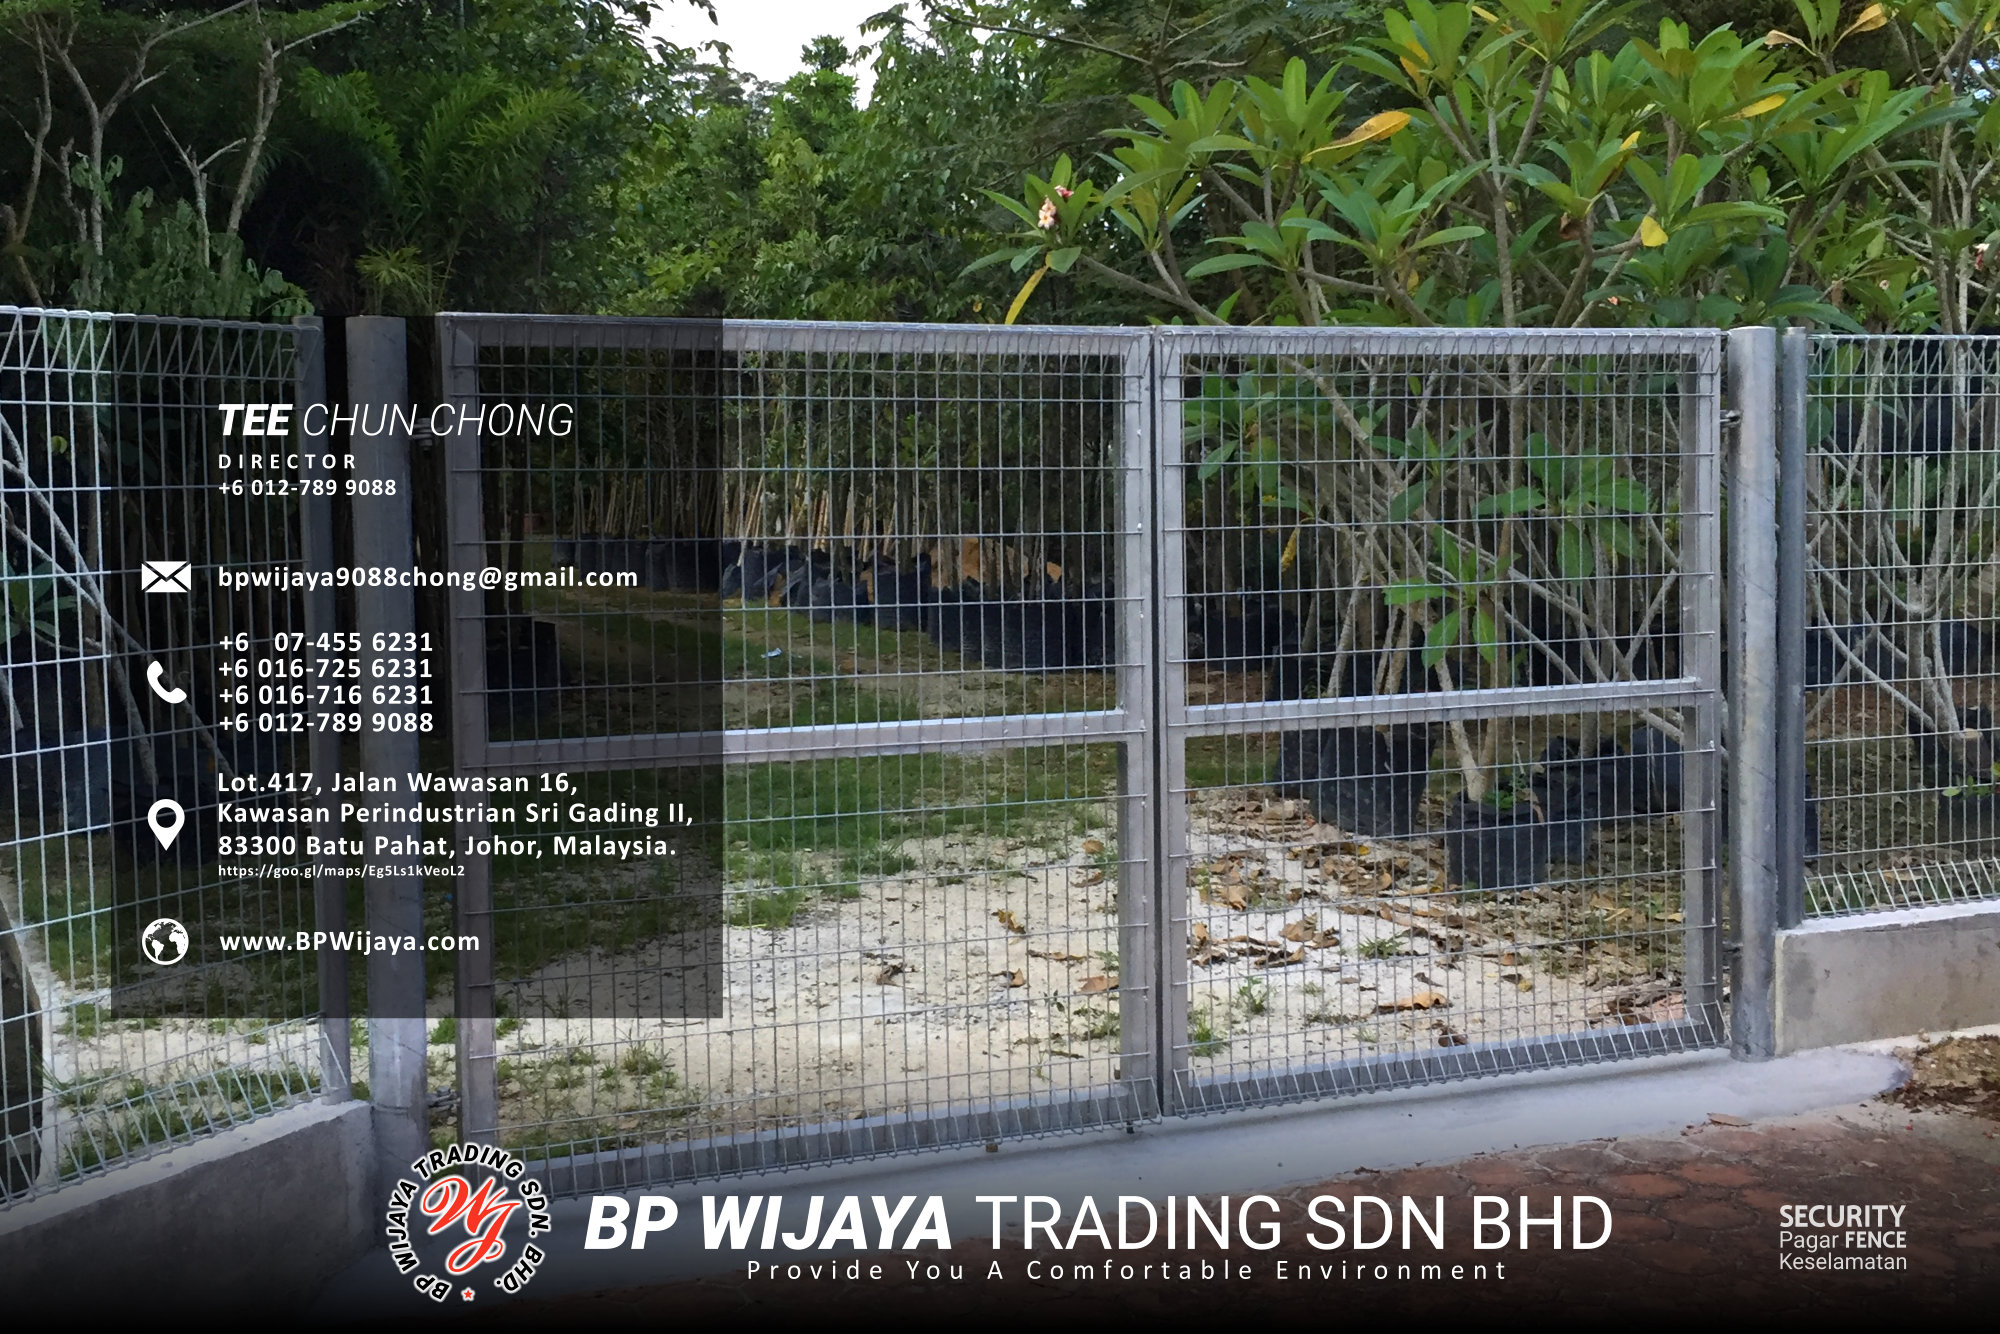 Kuala Lumpur Security Fence Supply we are manufacturer of security fence BP Wijaya Trading Sdn Bhd Safety Fence Building Materials for Housing Construction factory fence house beauty fence A03-026